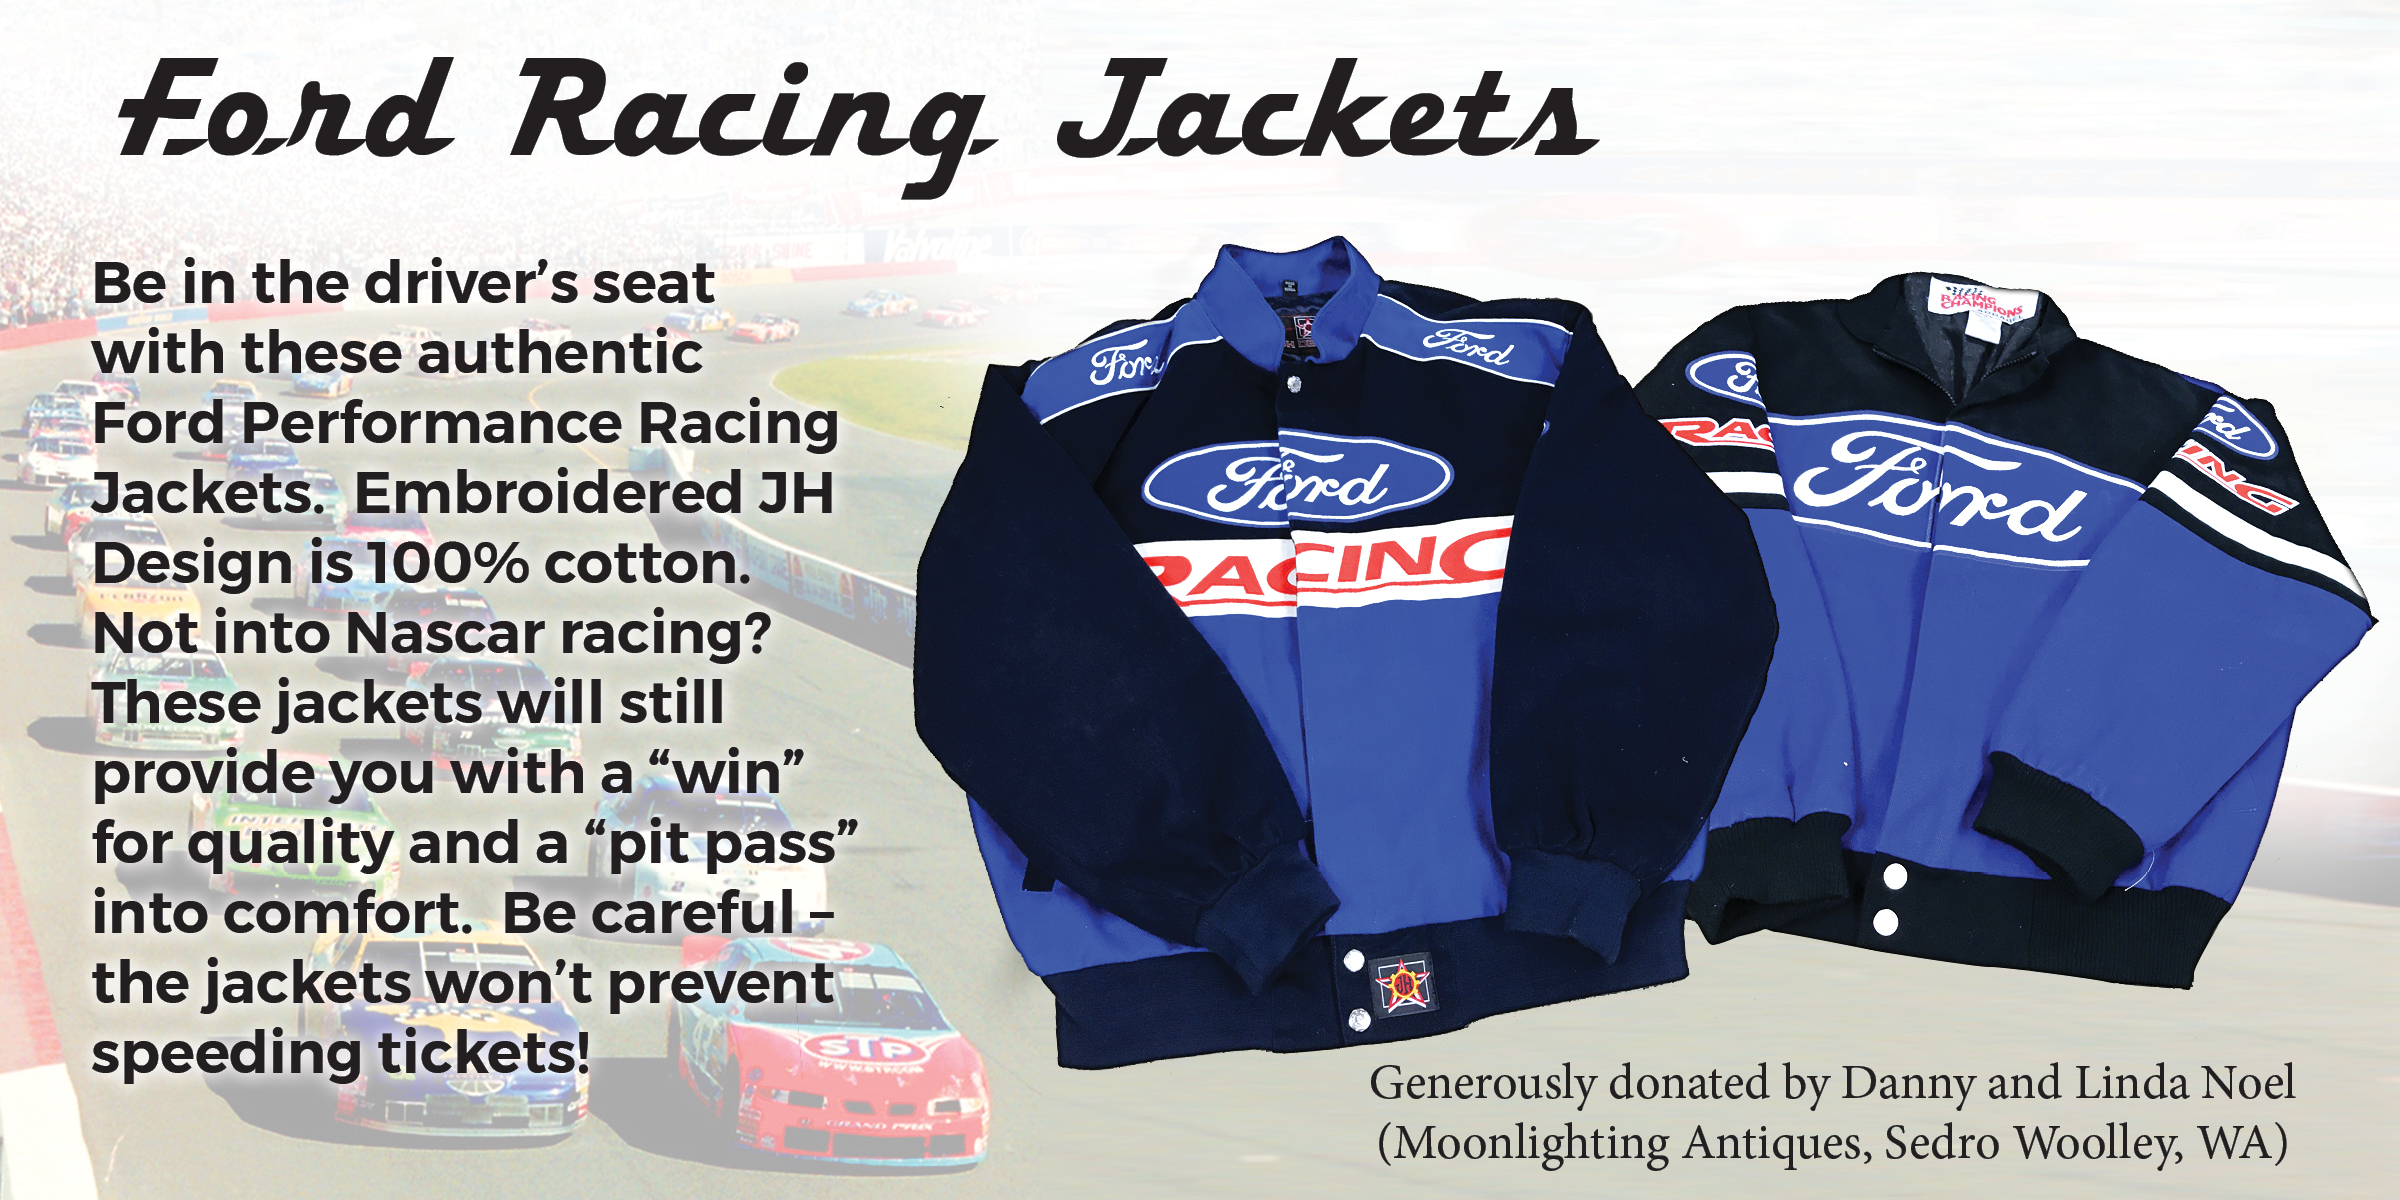 Ford Racing Jackets